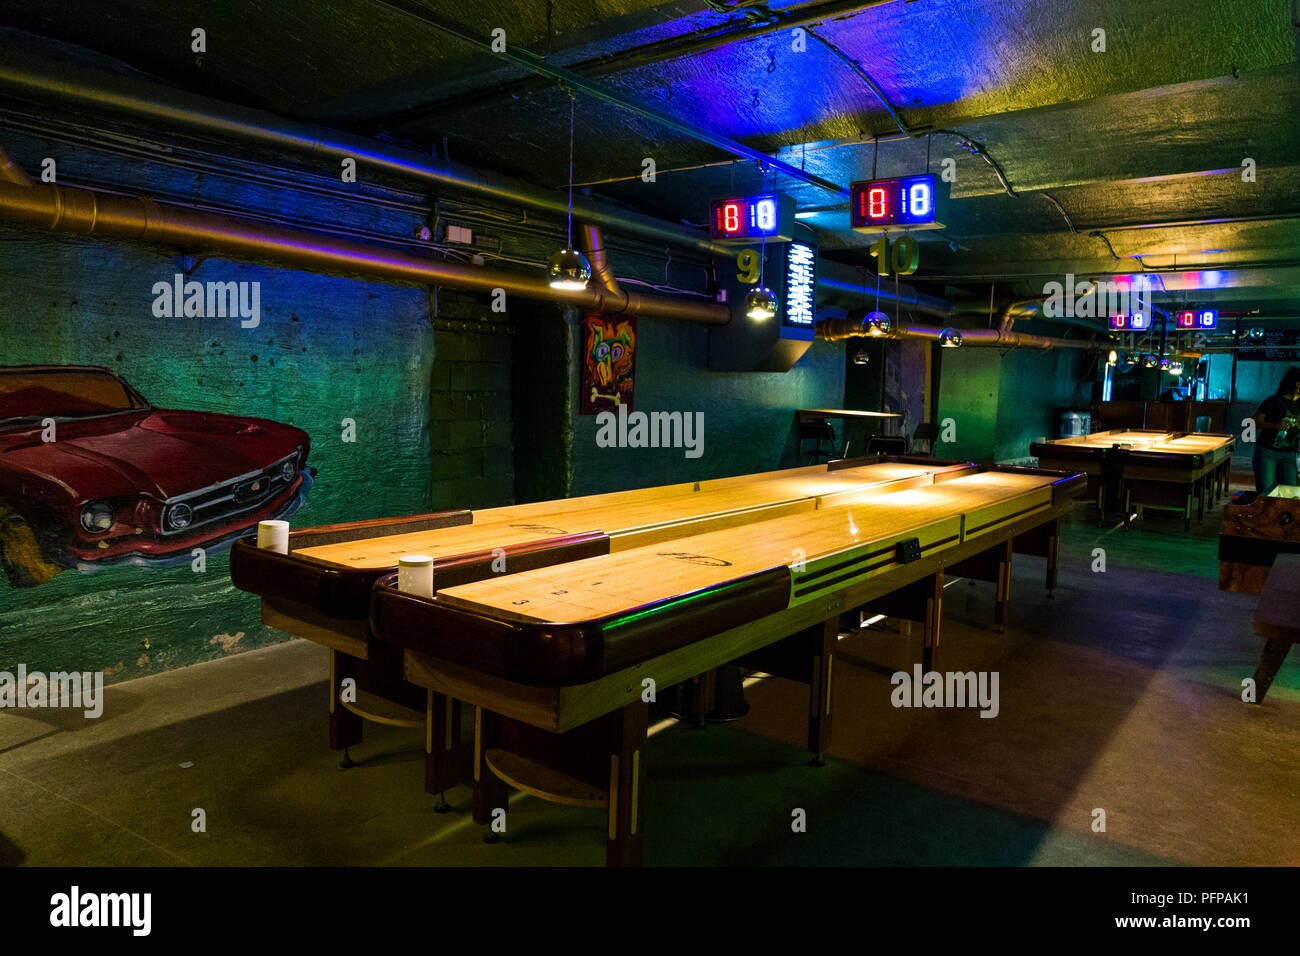 Shuffleboard table at a bar (Ugglan Boule & Bar, Sodermalm, Stockholm, Sweden) - Stock Image